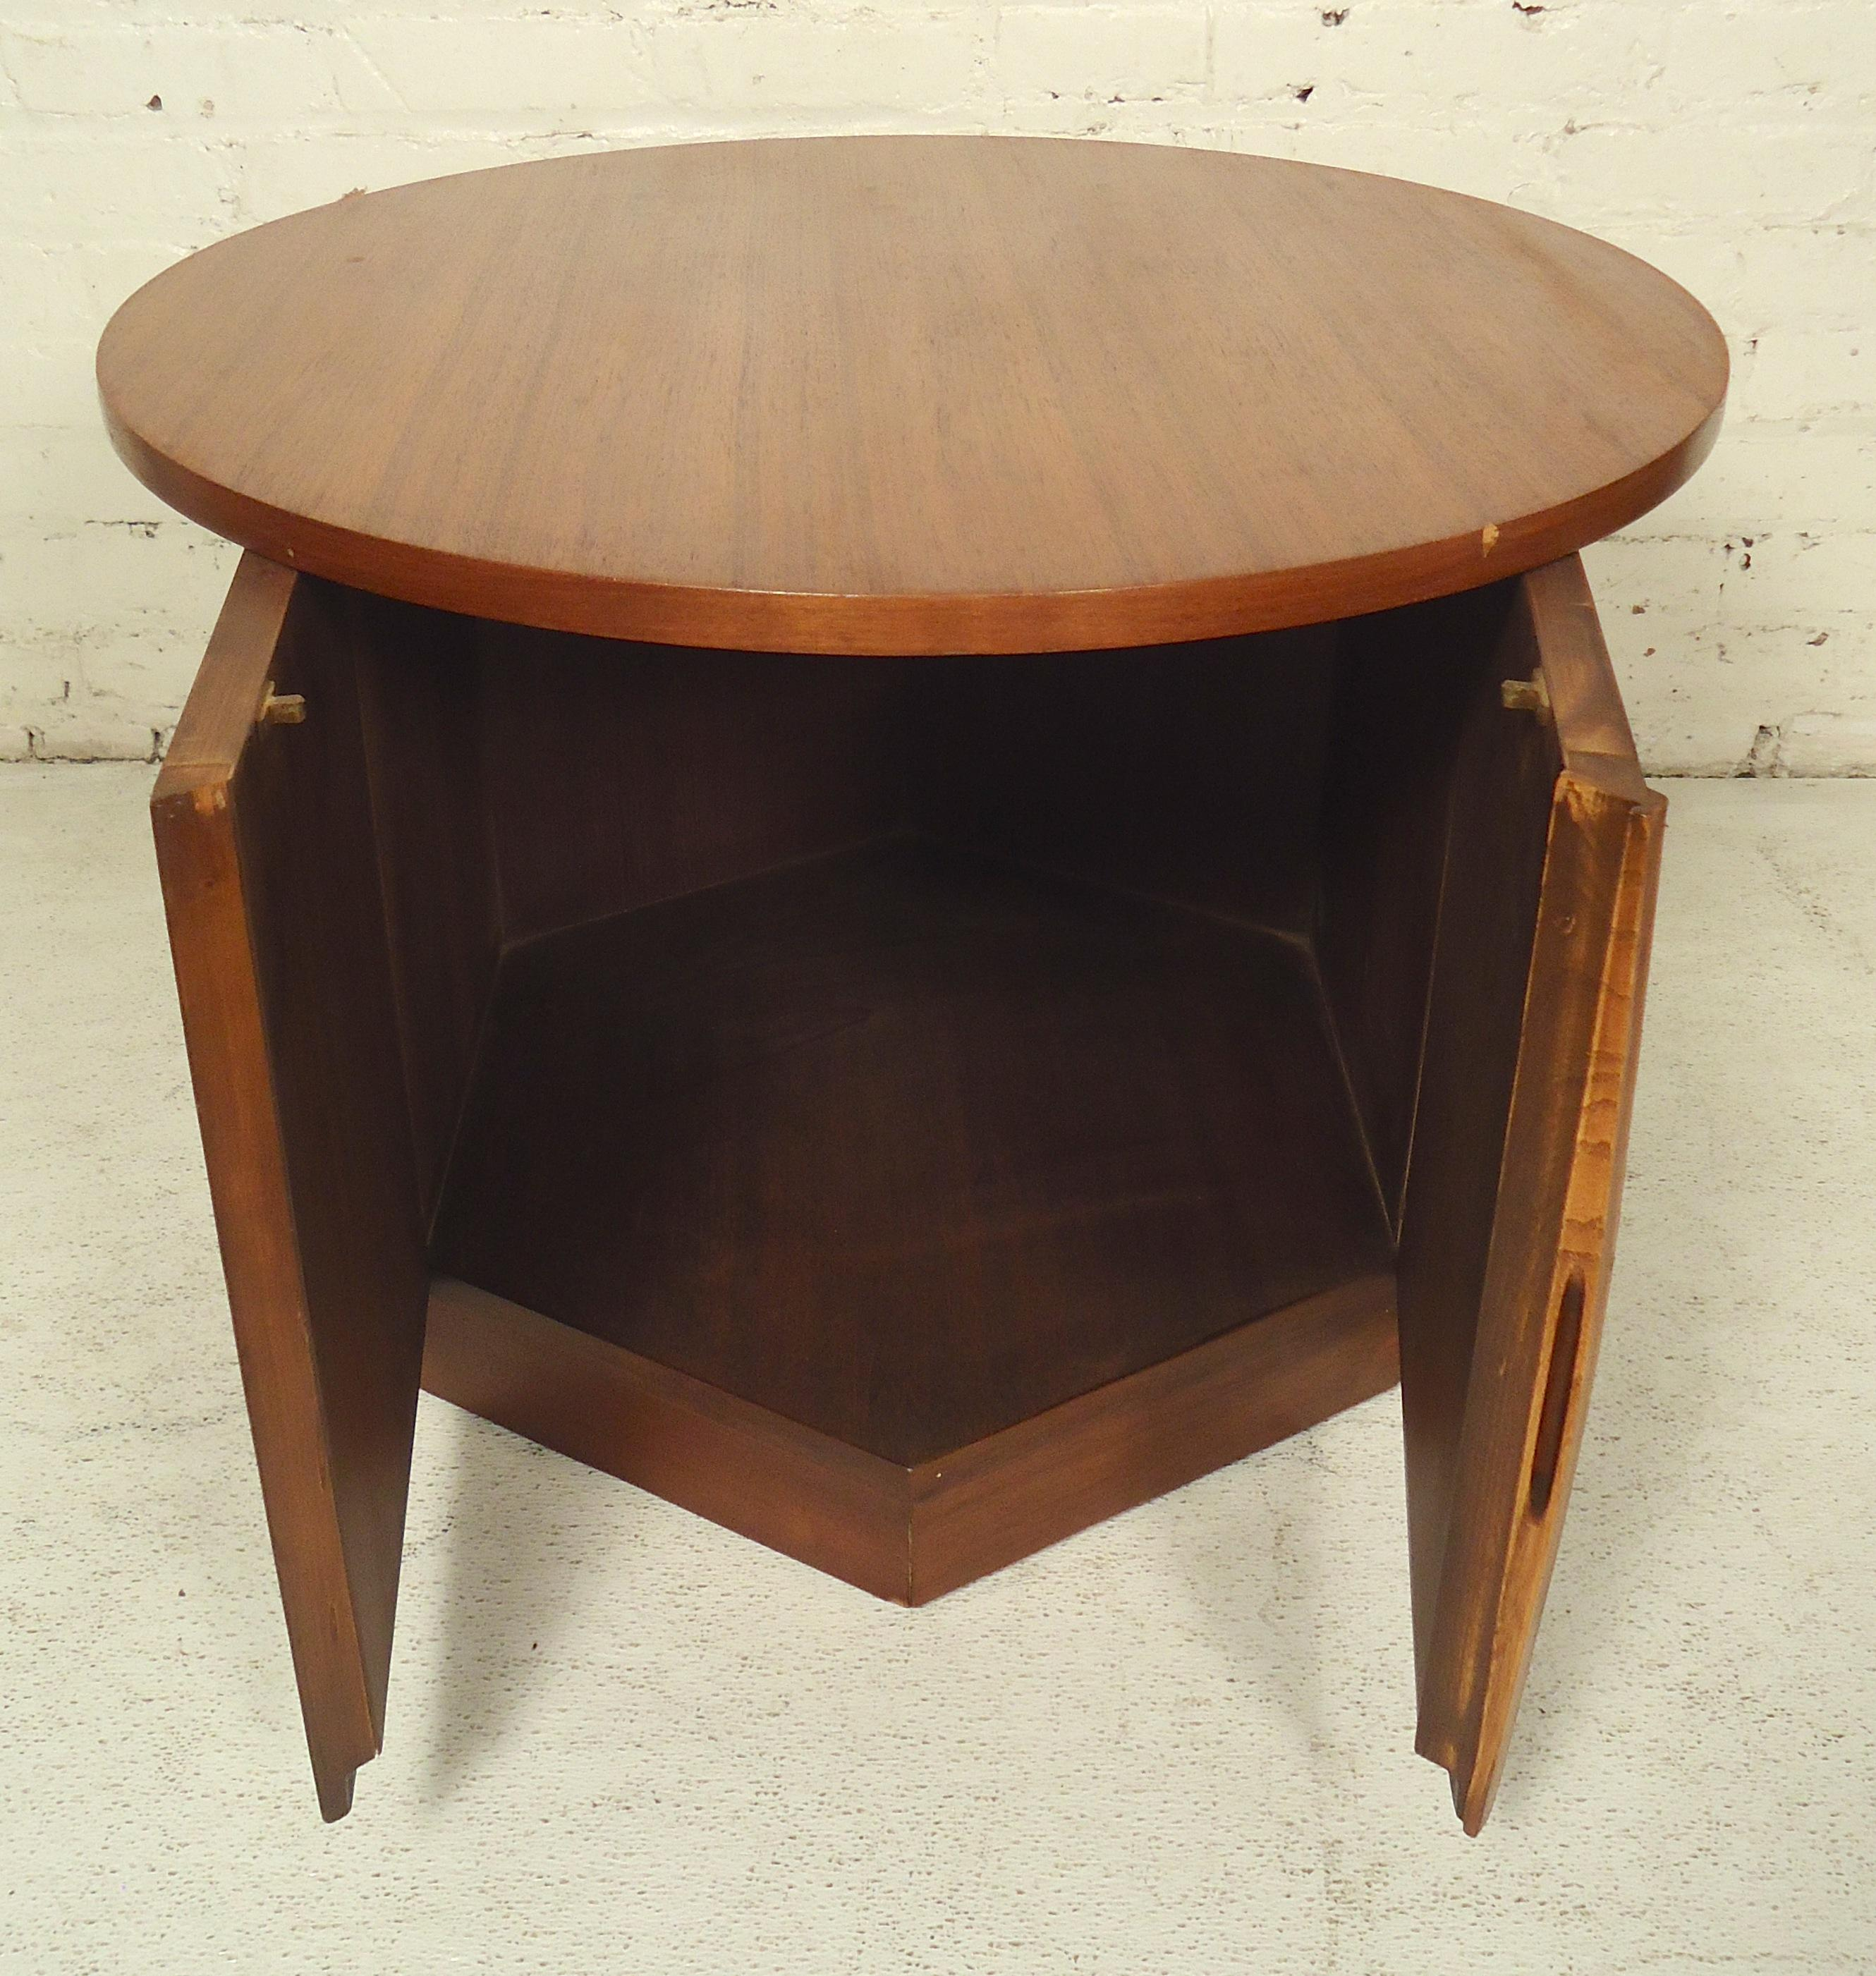 midcentury round side table with storage